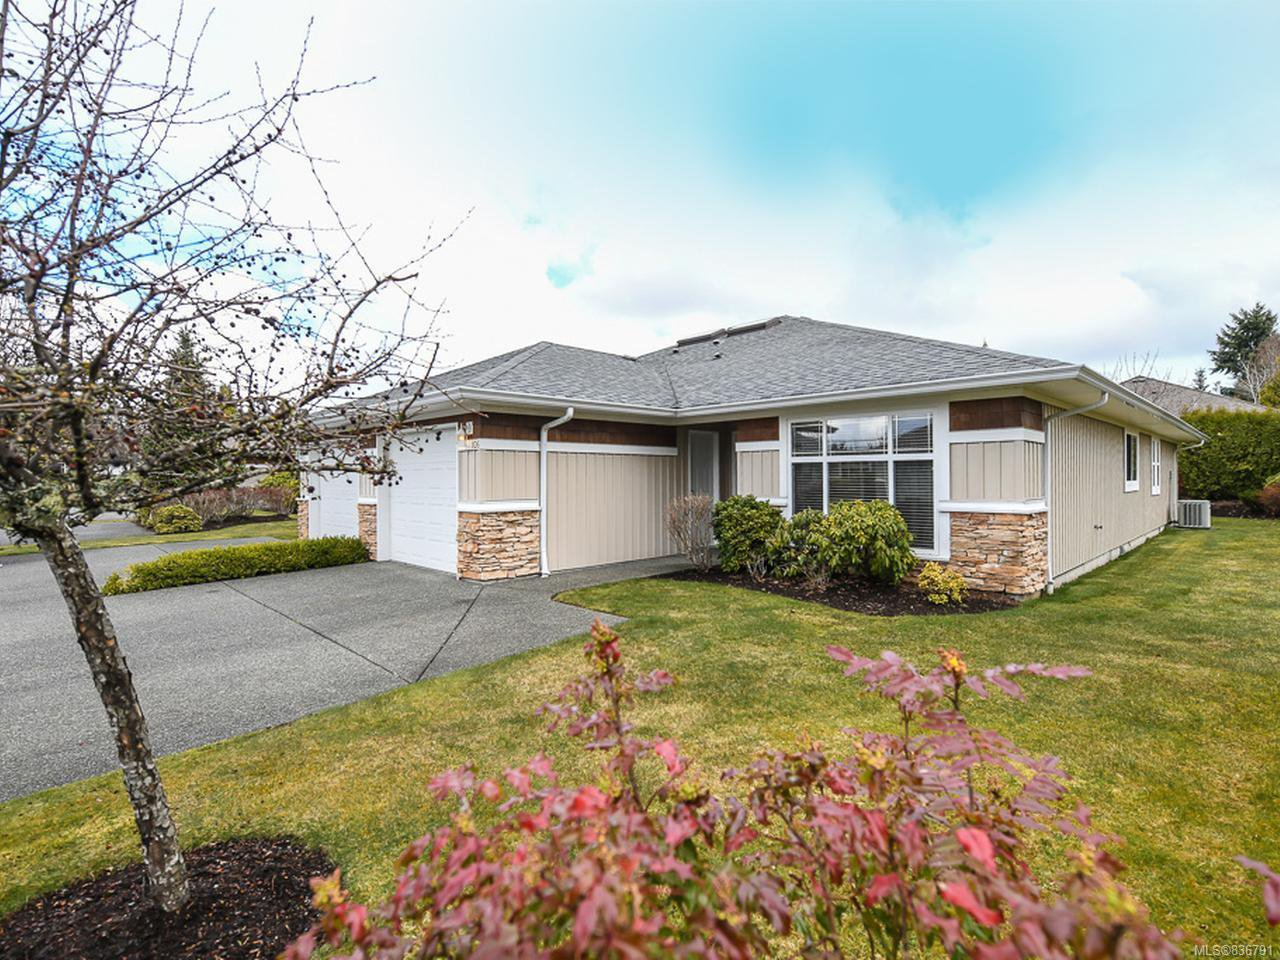 Main Photo: 106 2077 St Andrews Way in COURTENAY: CV Courtenay East Row/Townhouse for sale (Comox Valley)  : MLS®# 836791